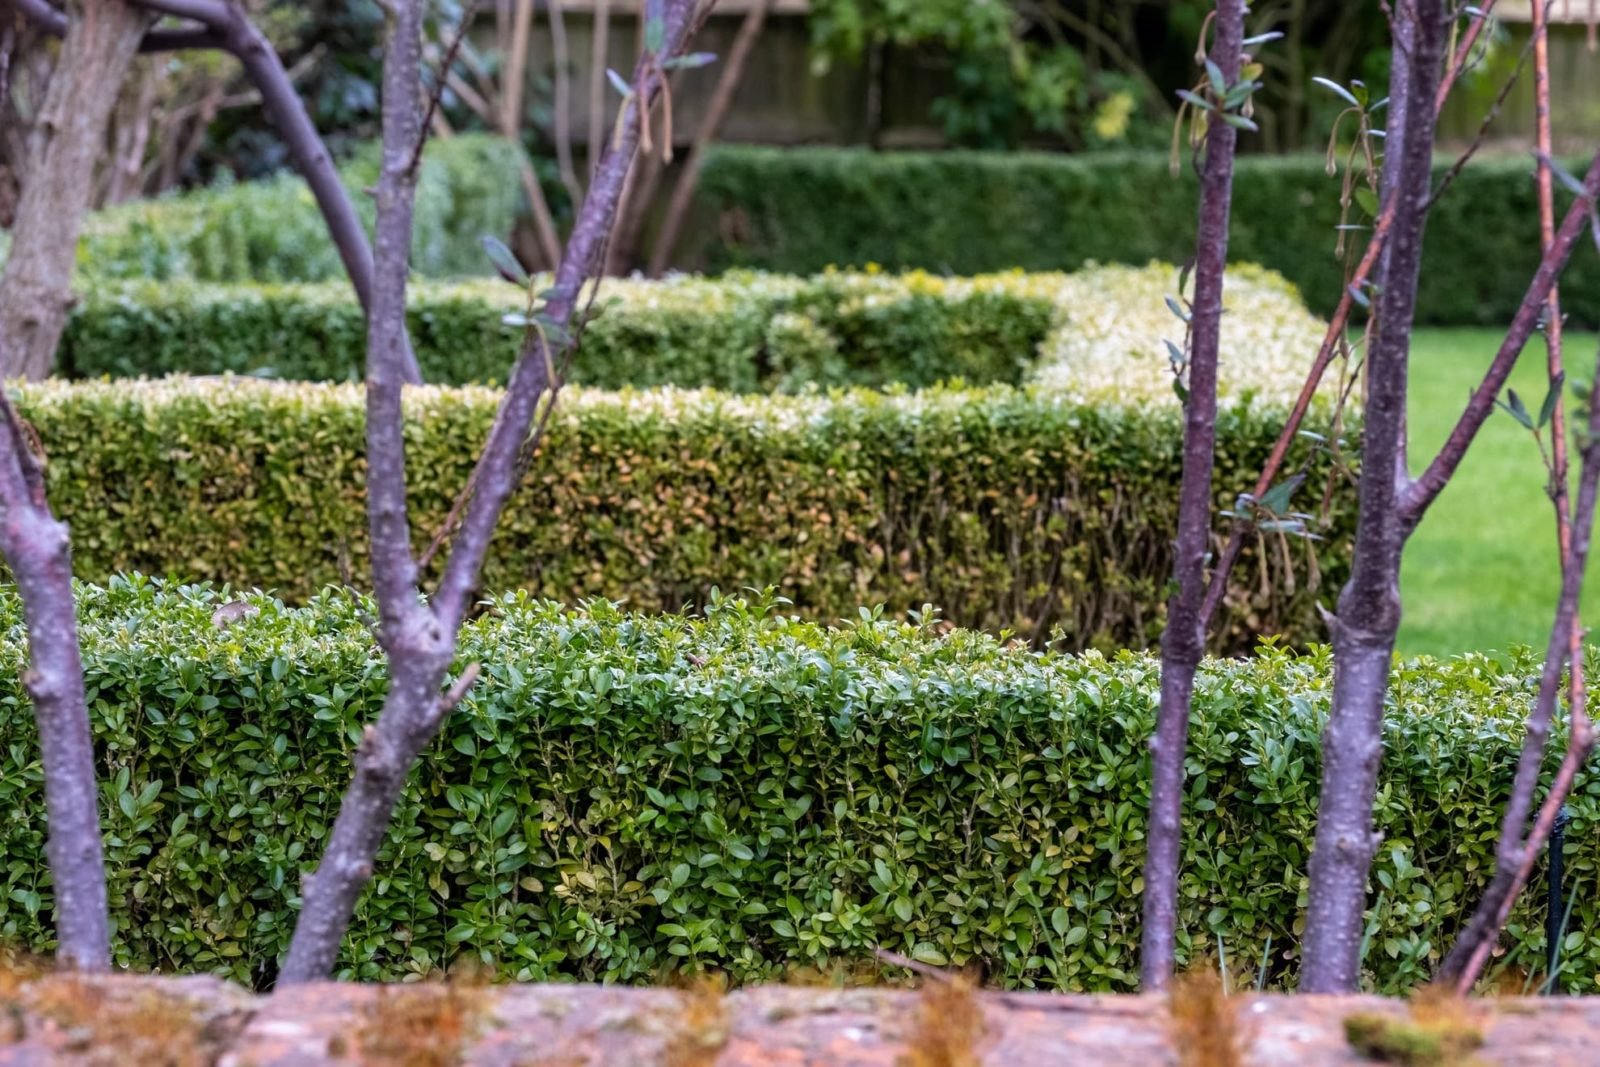 a partially infected box hedge with varying colouration